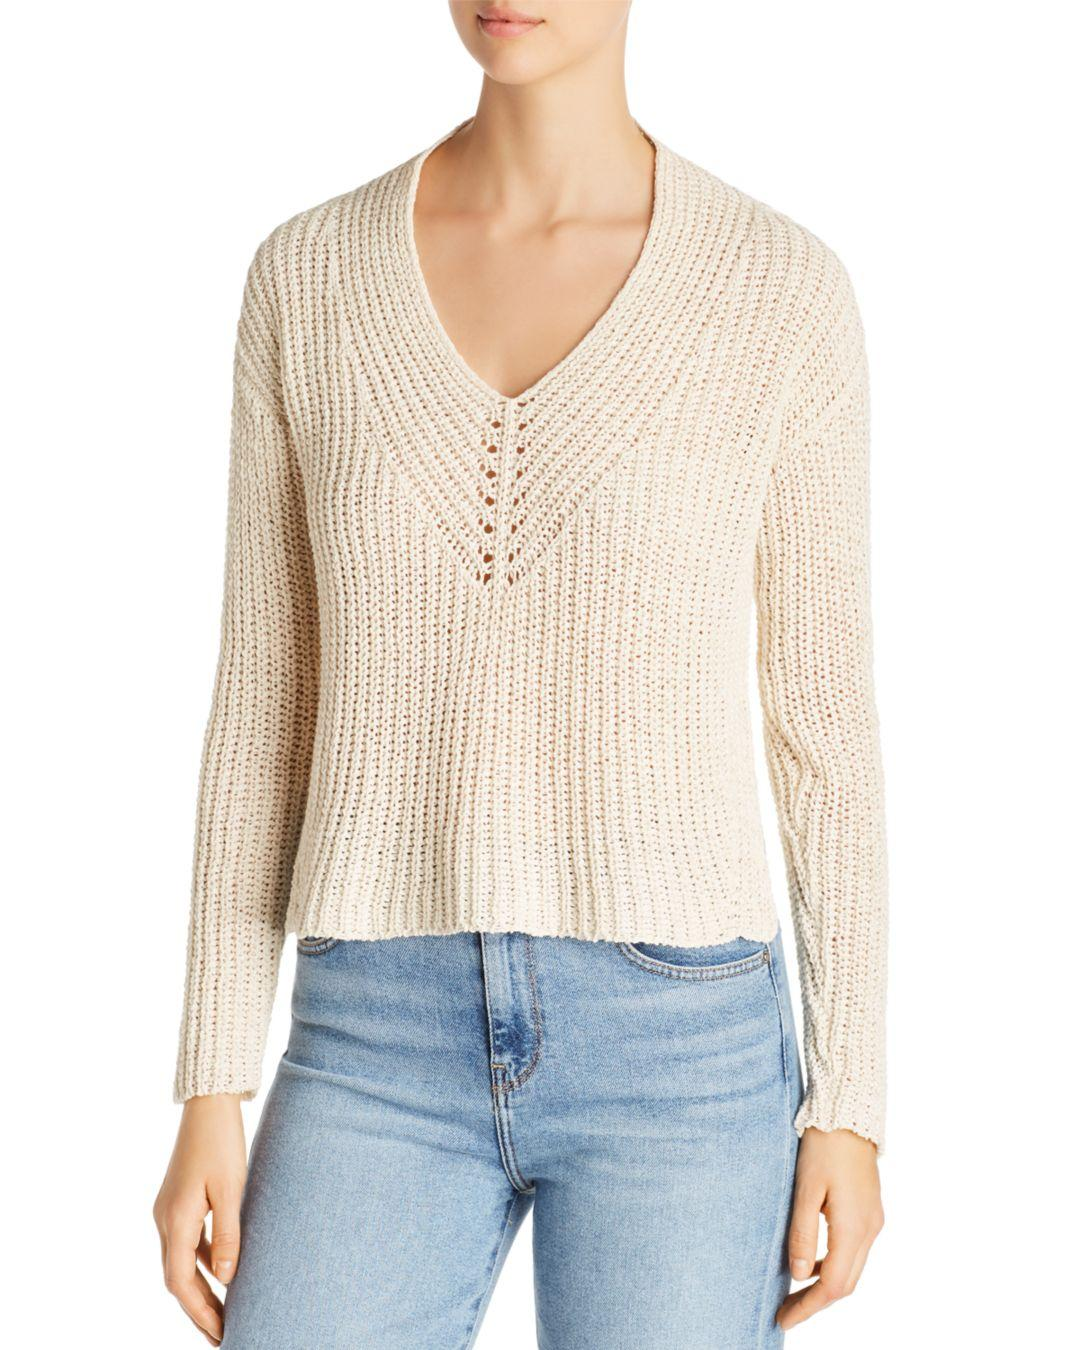 fbd9e0305f5682 Lyst - Eileen Fisher Cropped V-neck Sweater - Save 40%